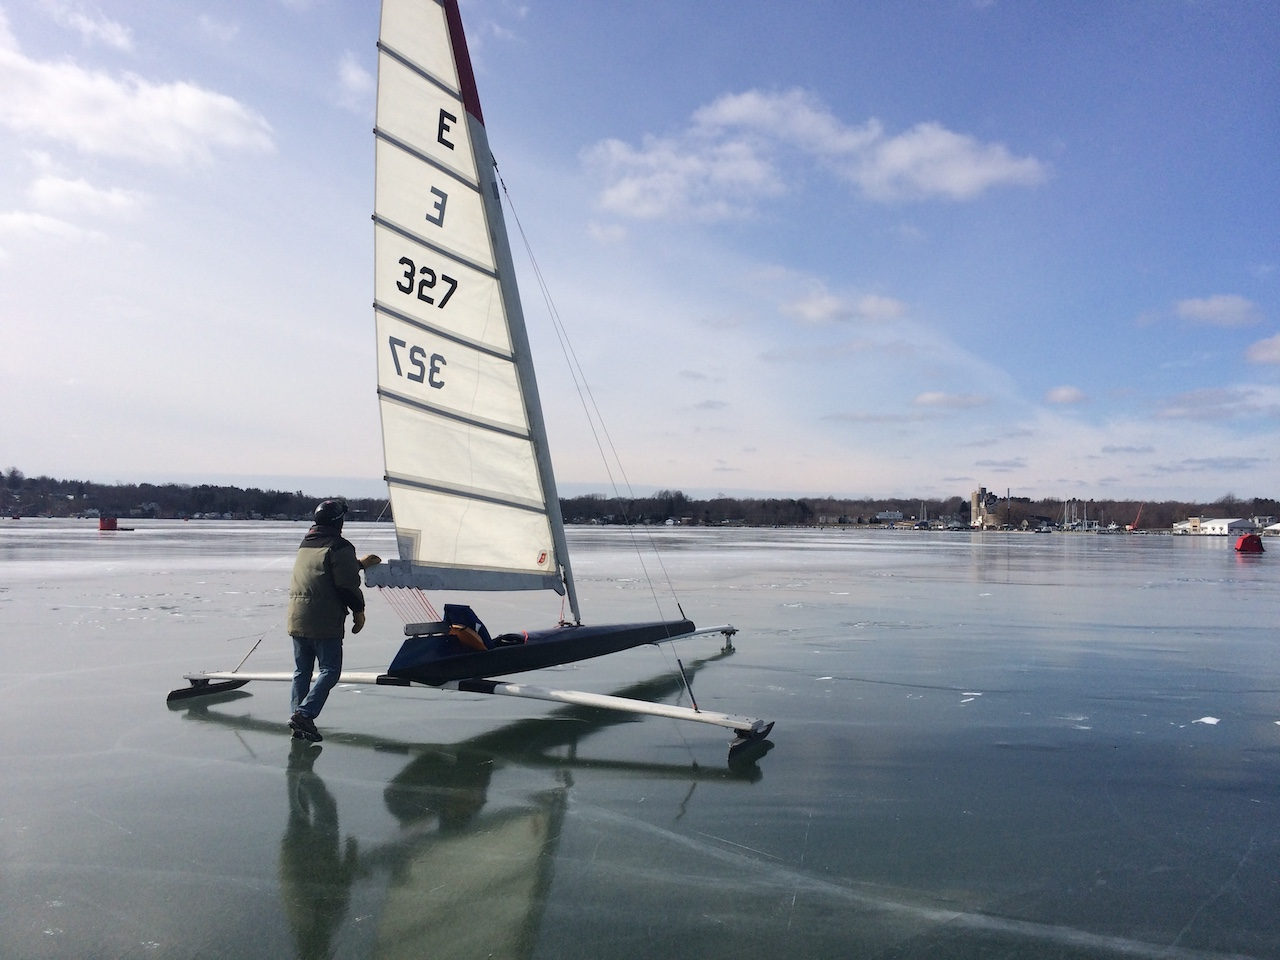 Timing is everything on an icy lake (photo)